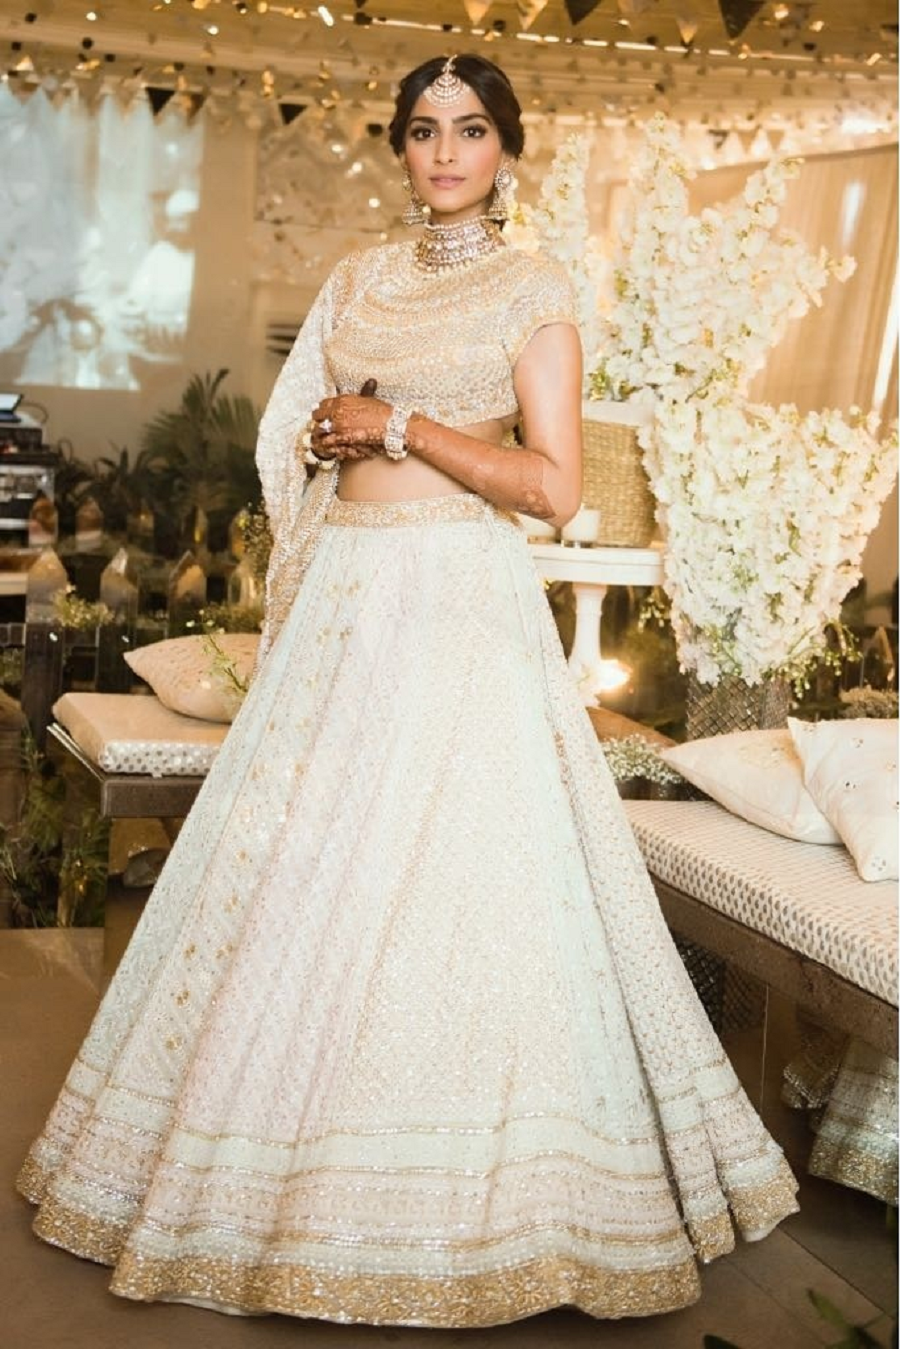 f6a0fdf90 Sonam Kapoor made headlines when she chose to wear this stunning ivory &  gold chikankari Abu Jani and Sandeep Khosla lehenga for the her sangeet and  mehendi ...